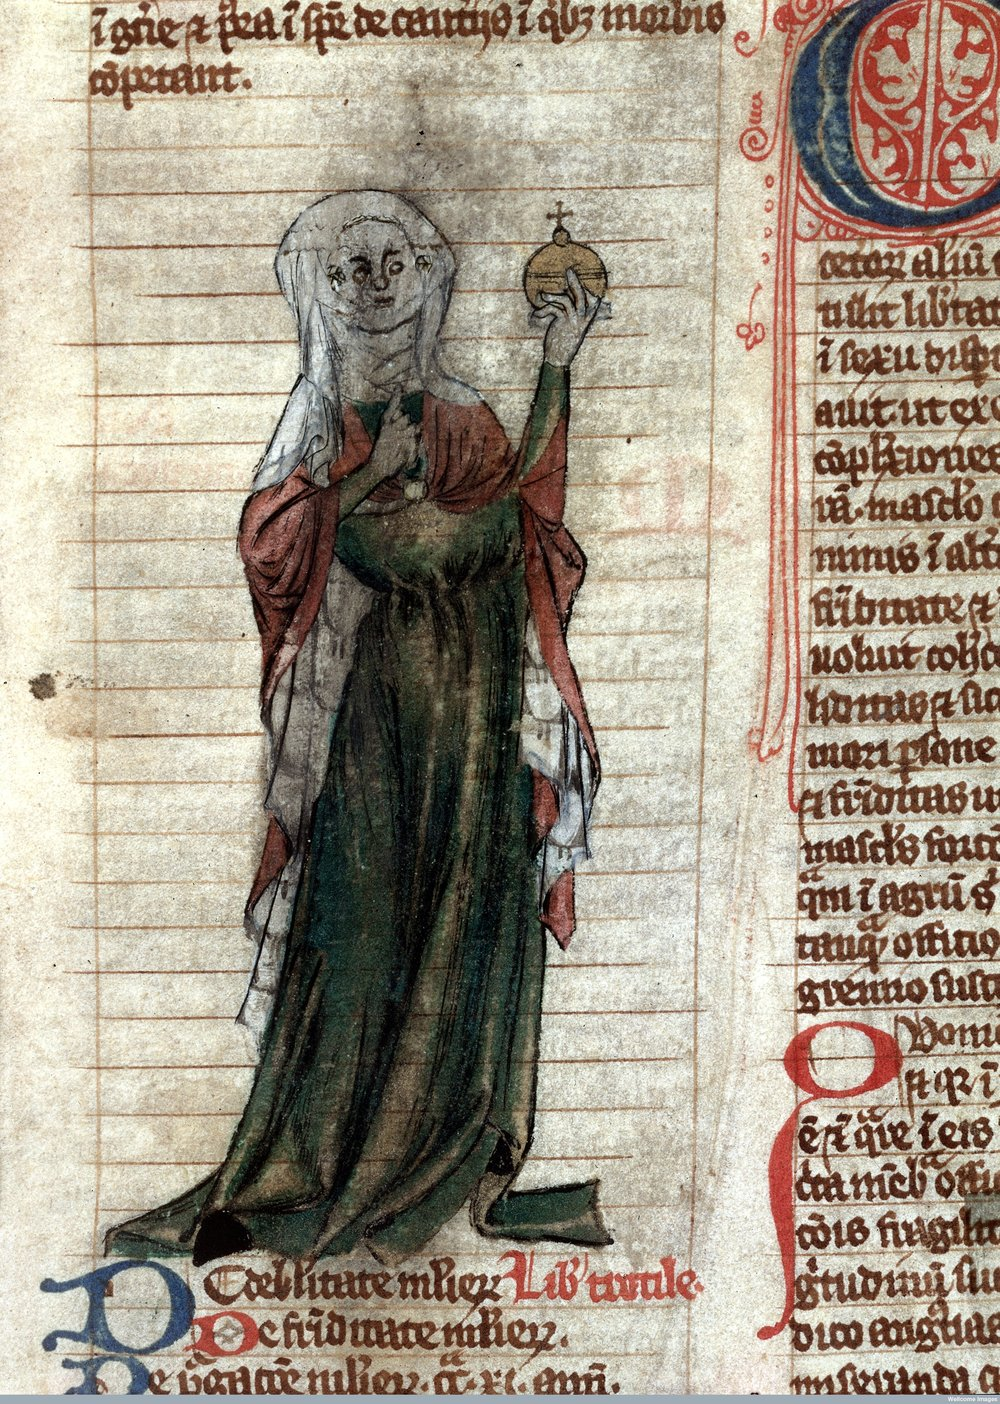 Trotula_of_Salerno_Miscellanea_medica_XVIII_Early_14th_Century.jpg